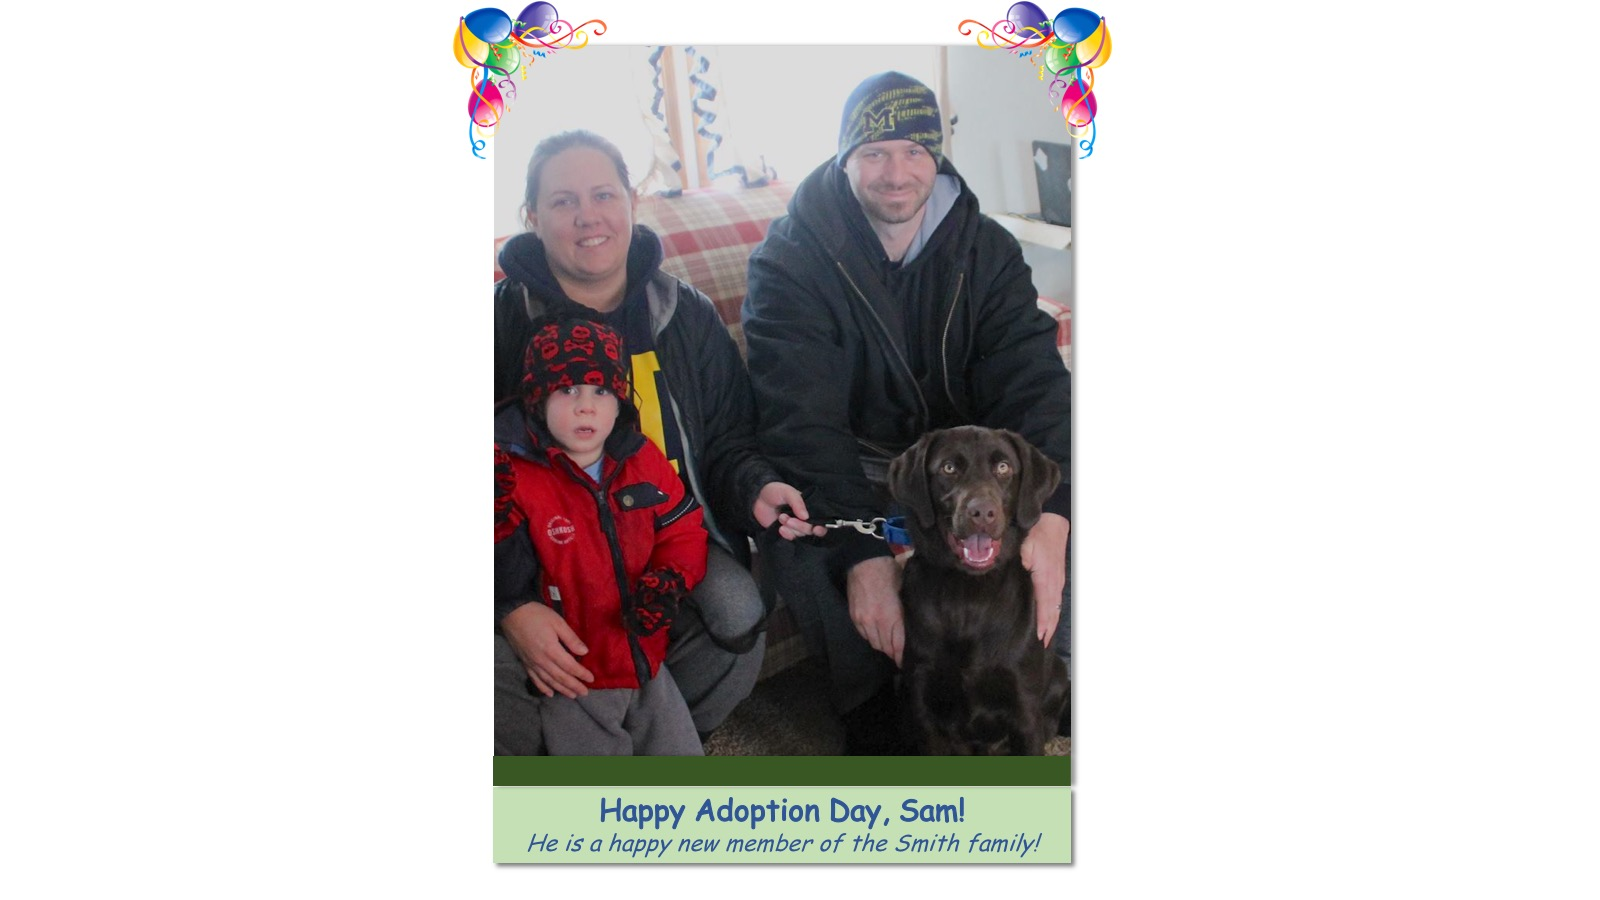 Sam_Adoption_Photo_2018.jpg